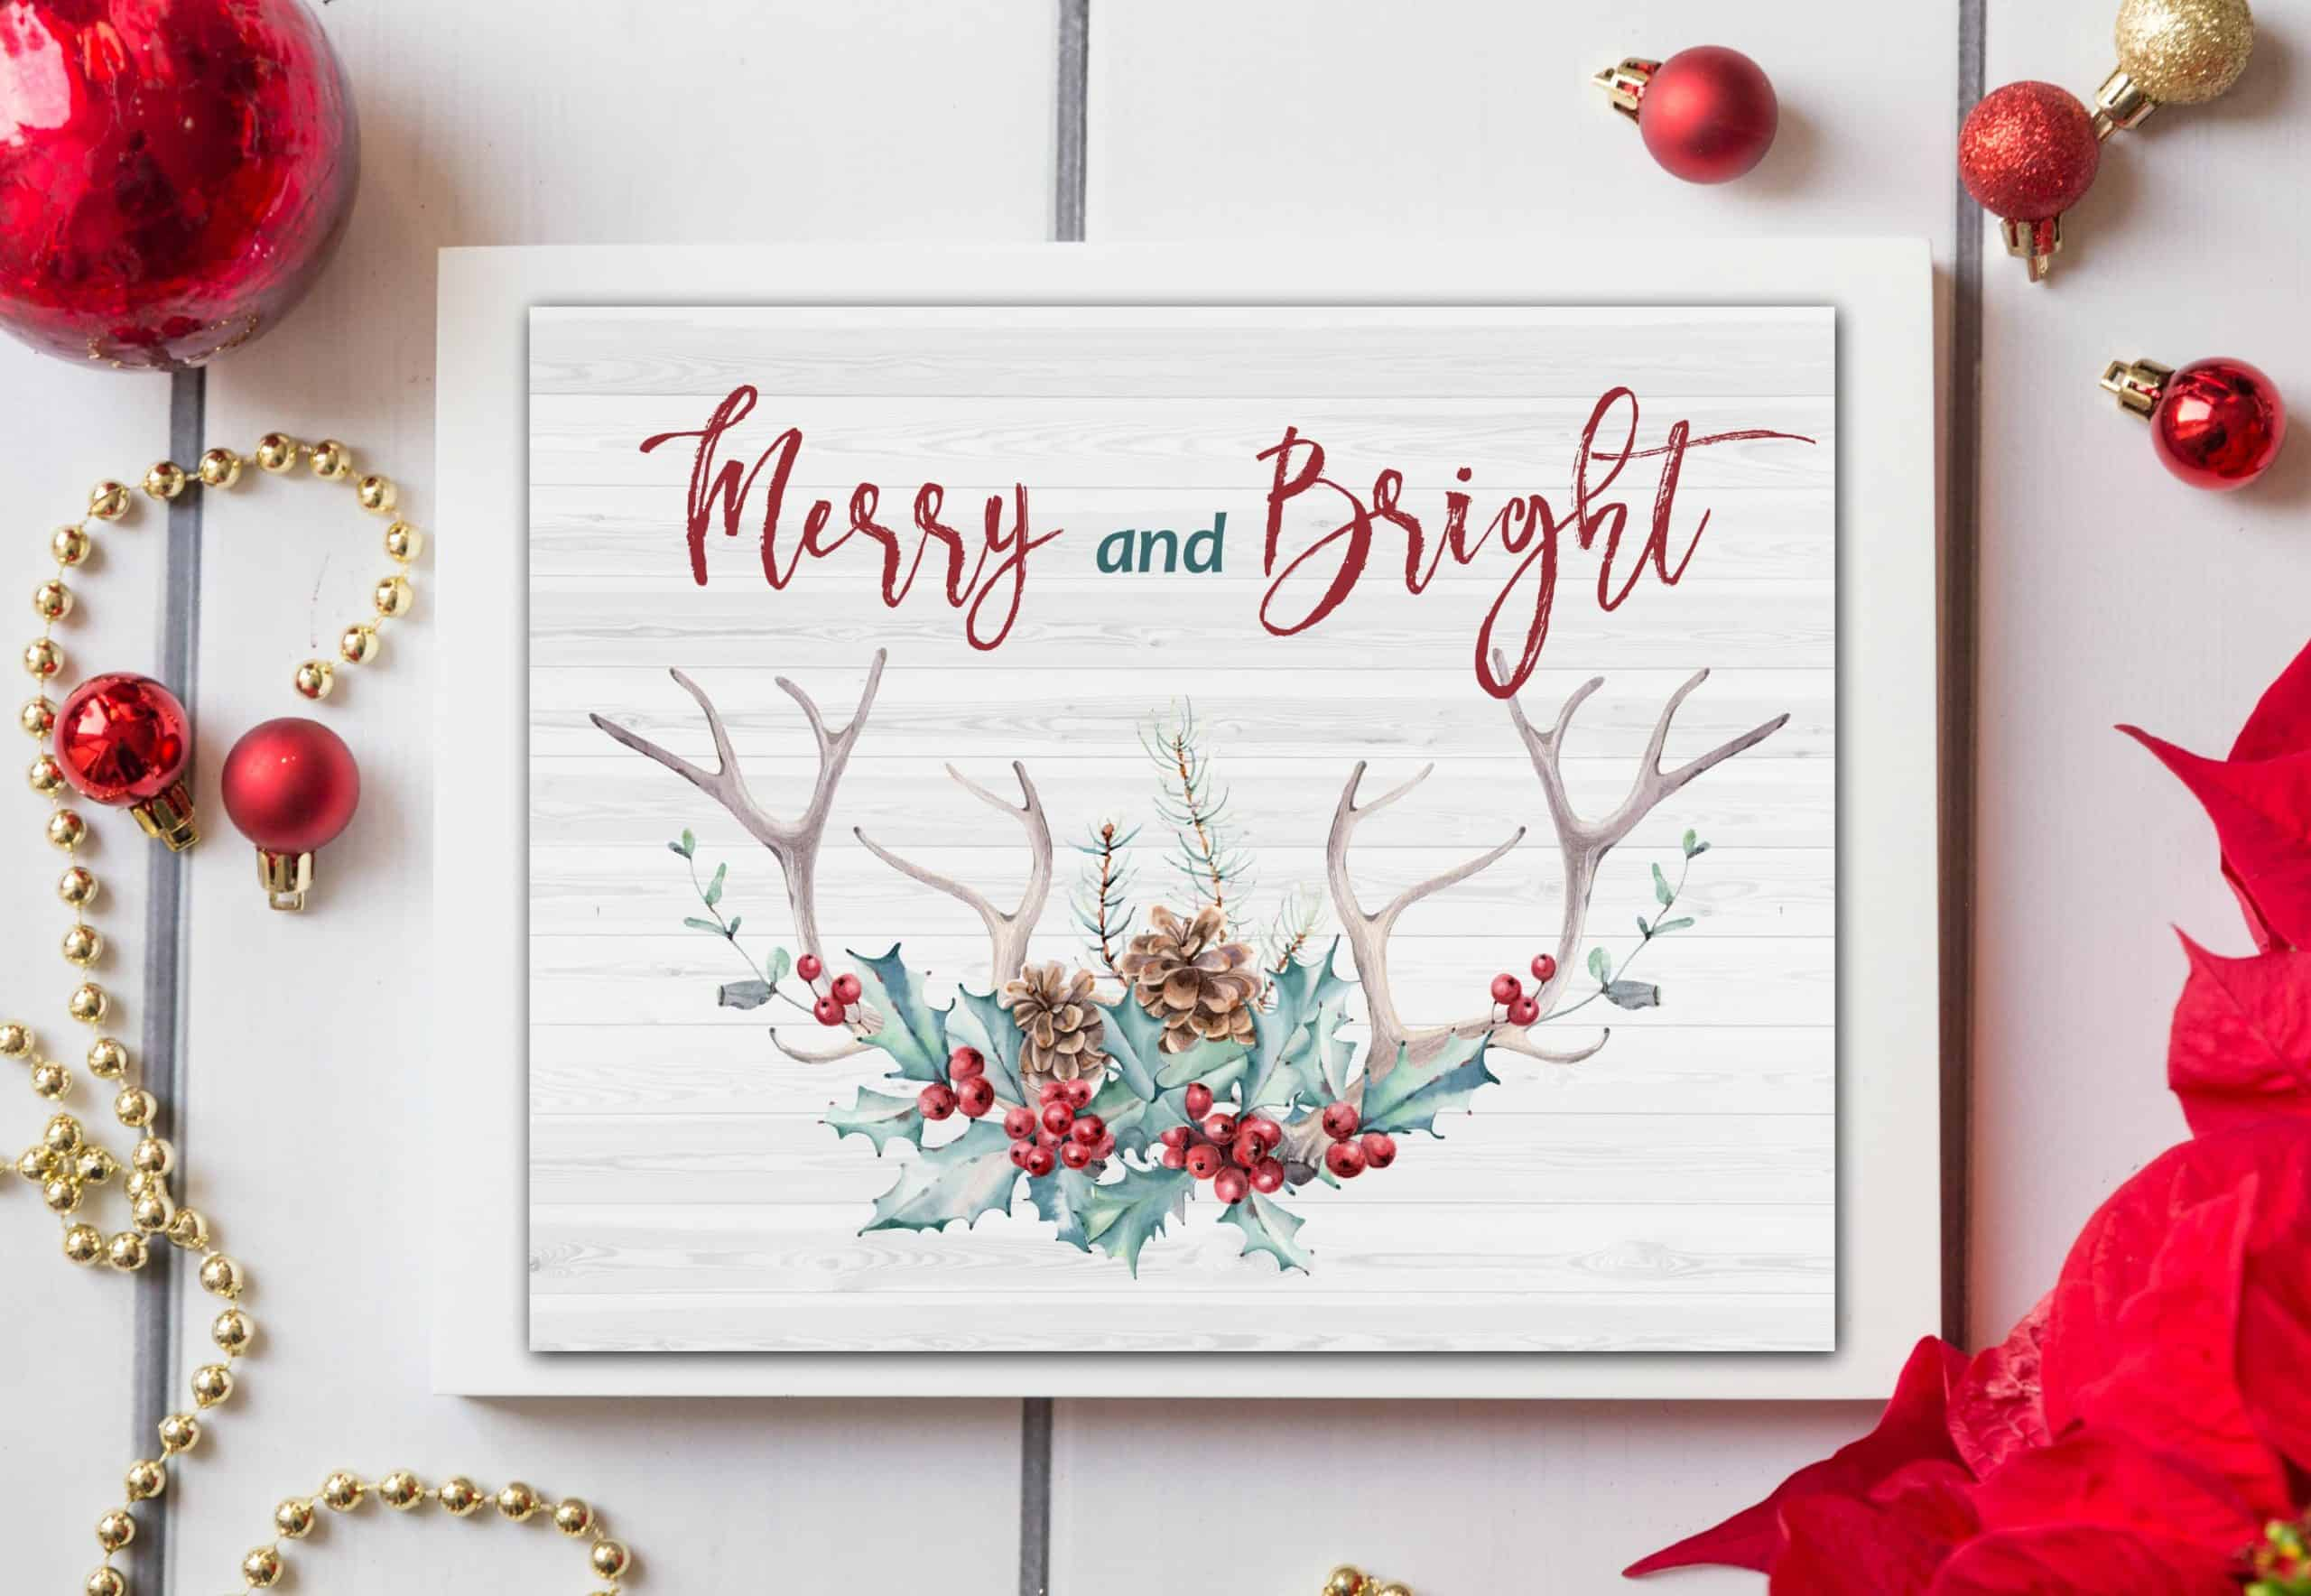 merry and bright christmas printable in white frame and red ribbon